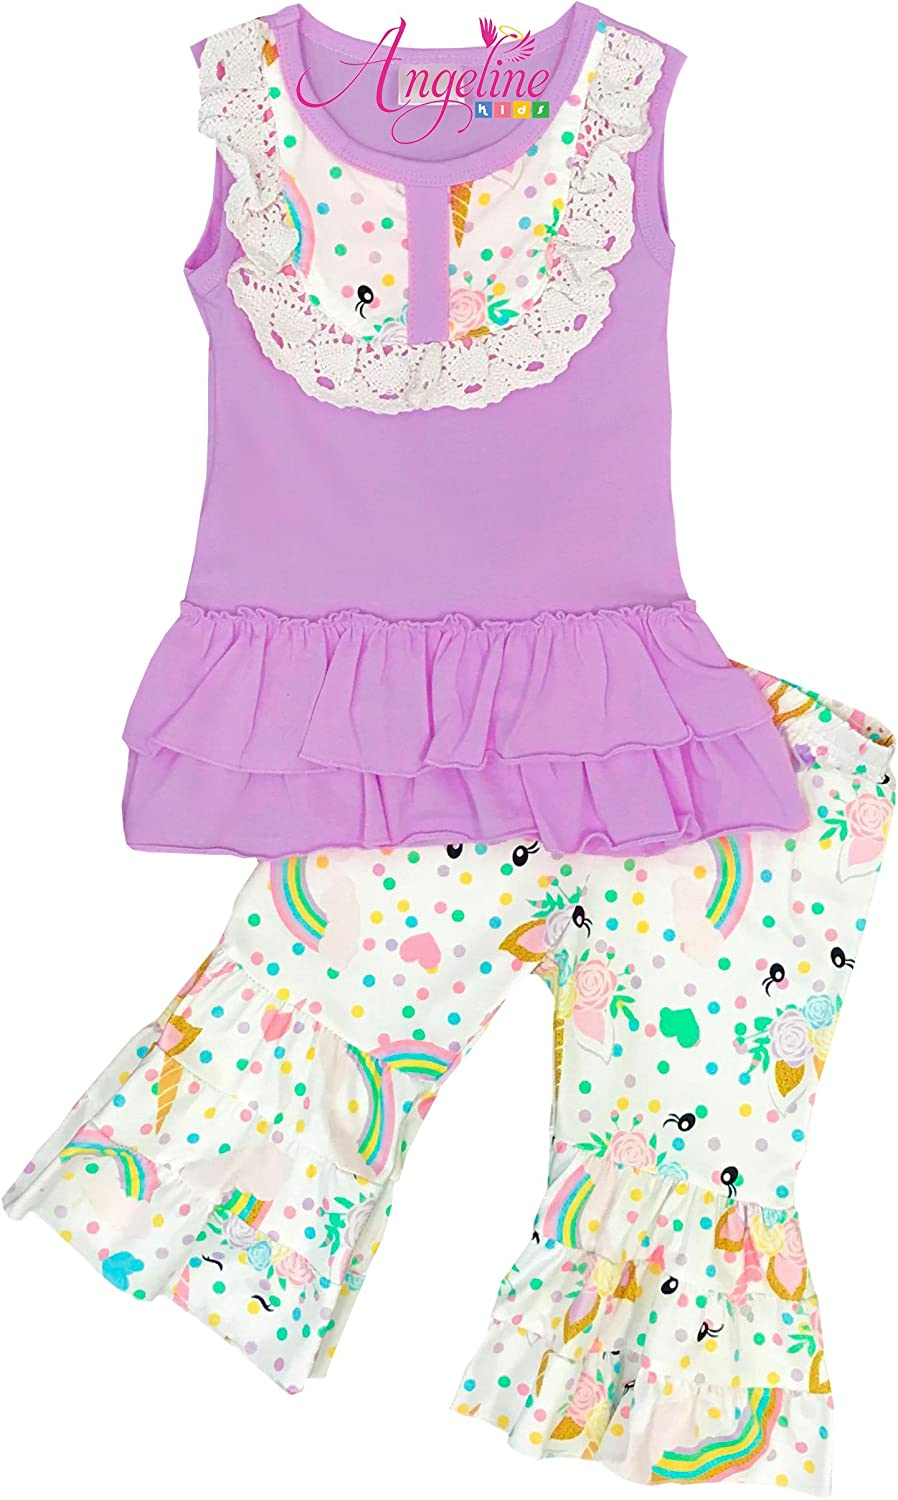 abe5ff52b63e2 Please choose the SIZE your girl usually wears. DO NOT refer to AMAZON\'s  General Size Chart. Size 2T is for average 2-3 year-old girls.